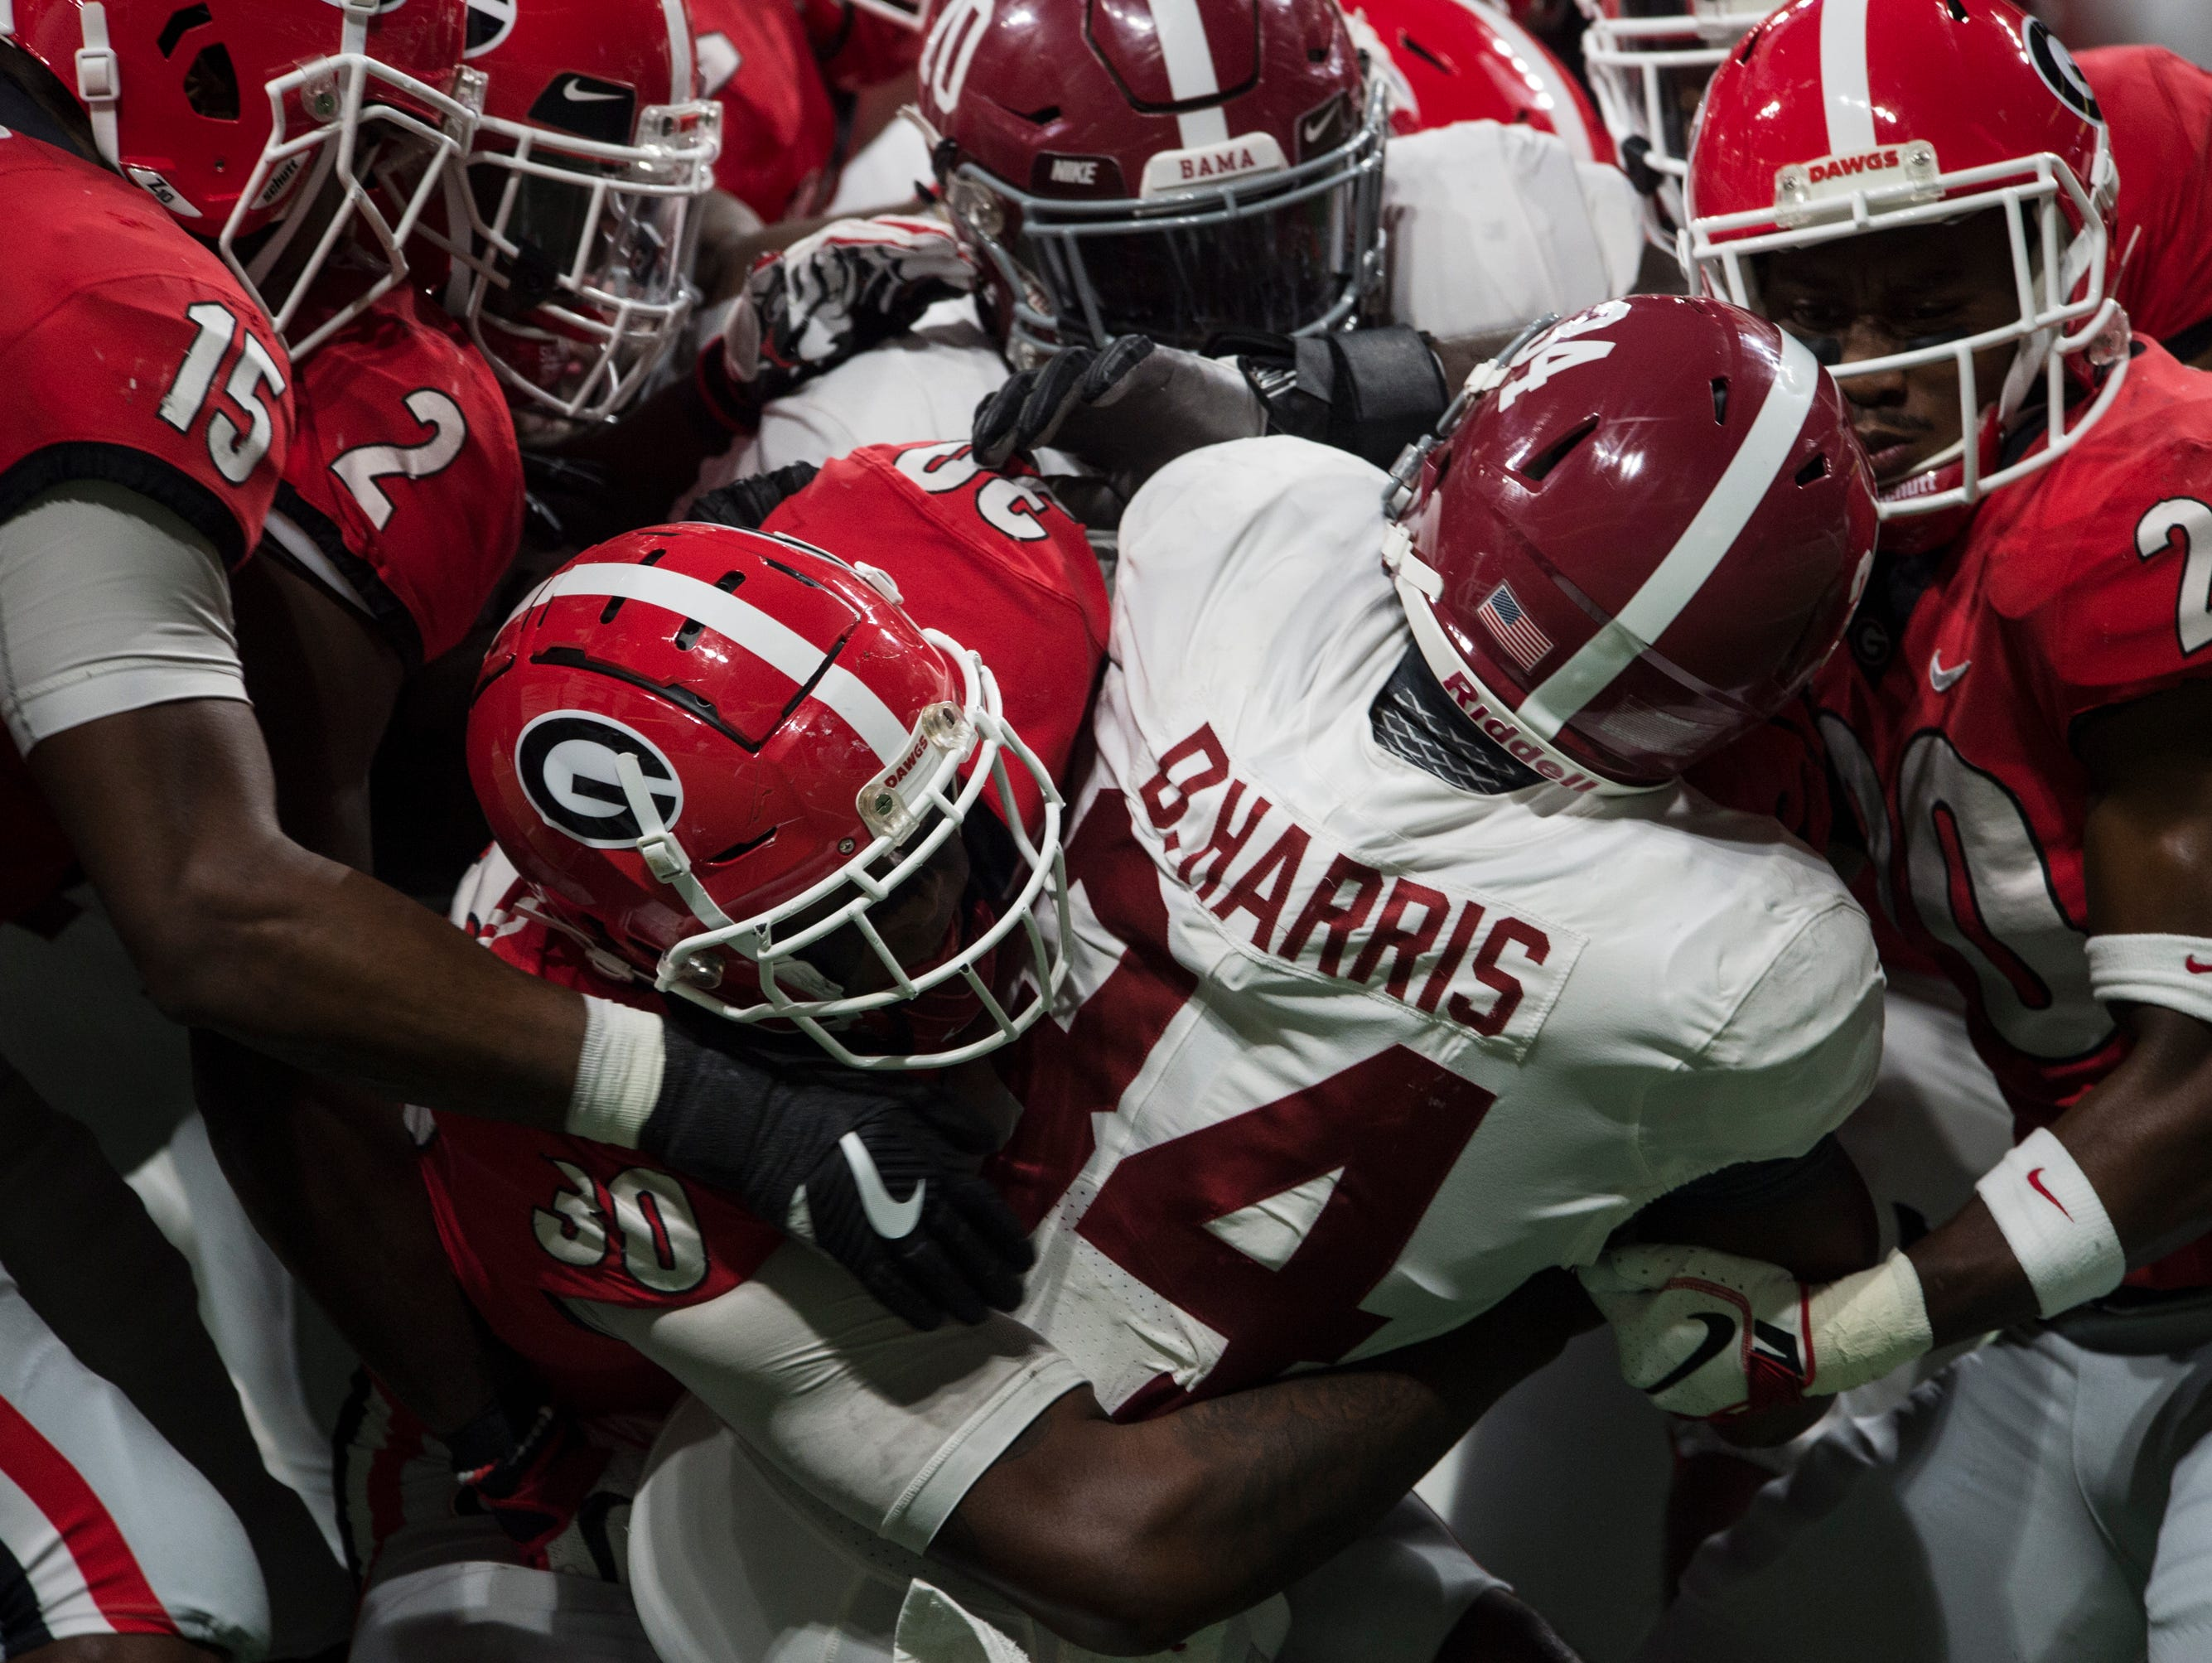 Alabama running back Damien Harris (34) is taken down by a swarm of Georgia defenders during the SEC Championship game at Mercedes-Benz Stadium in Atlanta, Ga., on Saturday Dec. 1, 2018. Georgia leads Alabama 21-14 at halftime.